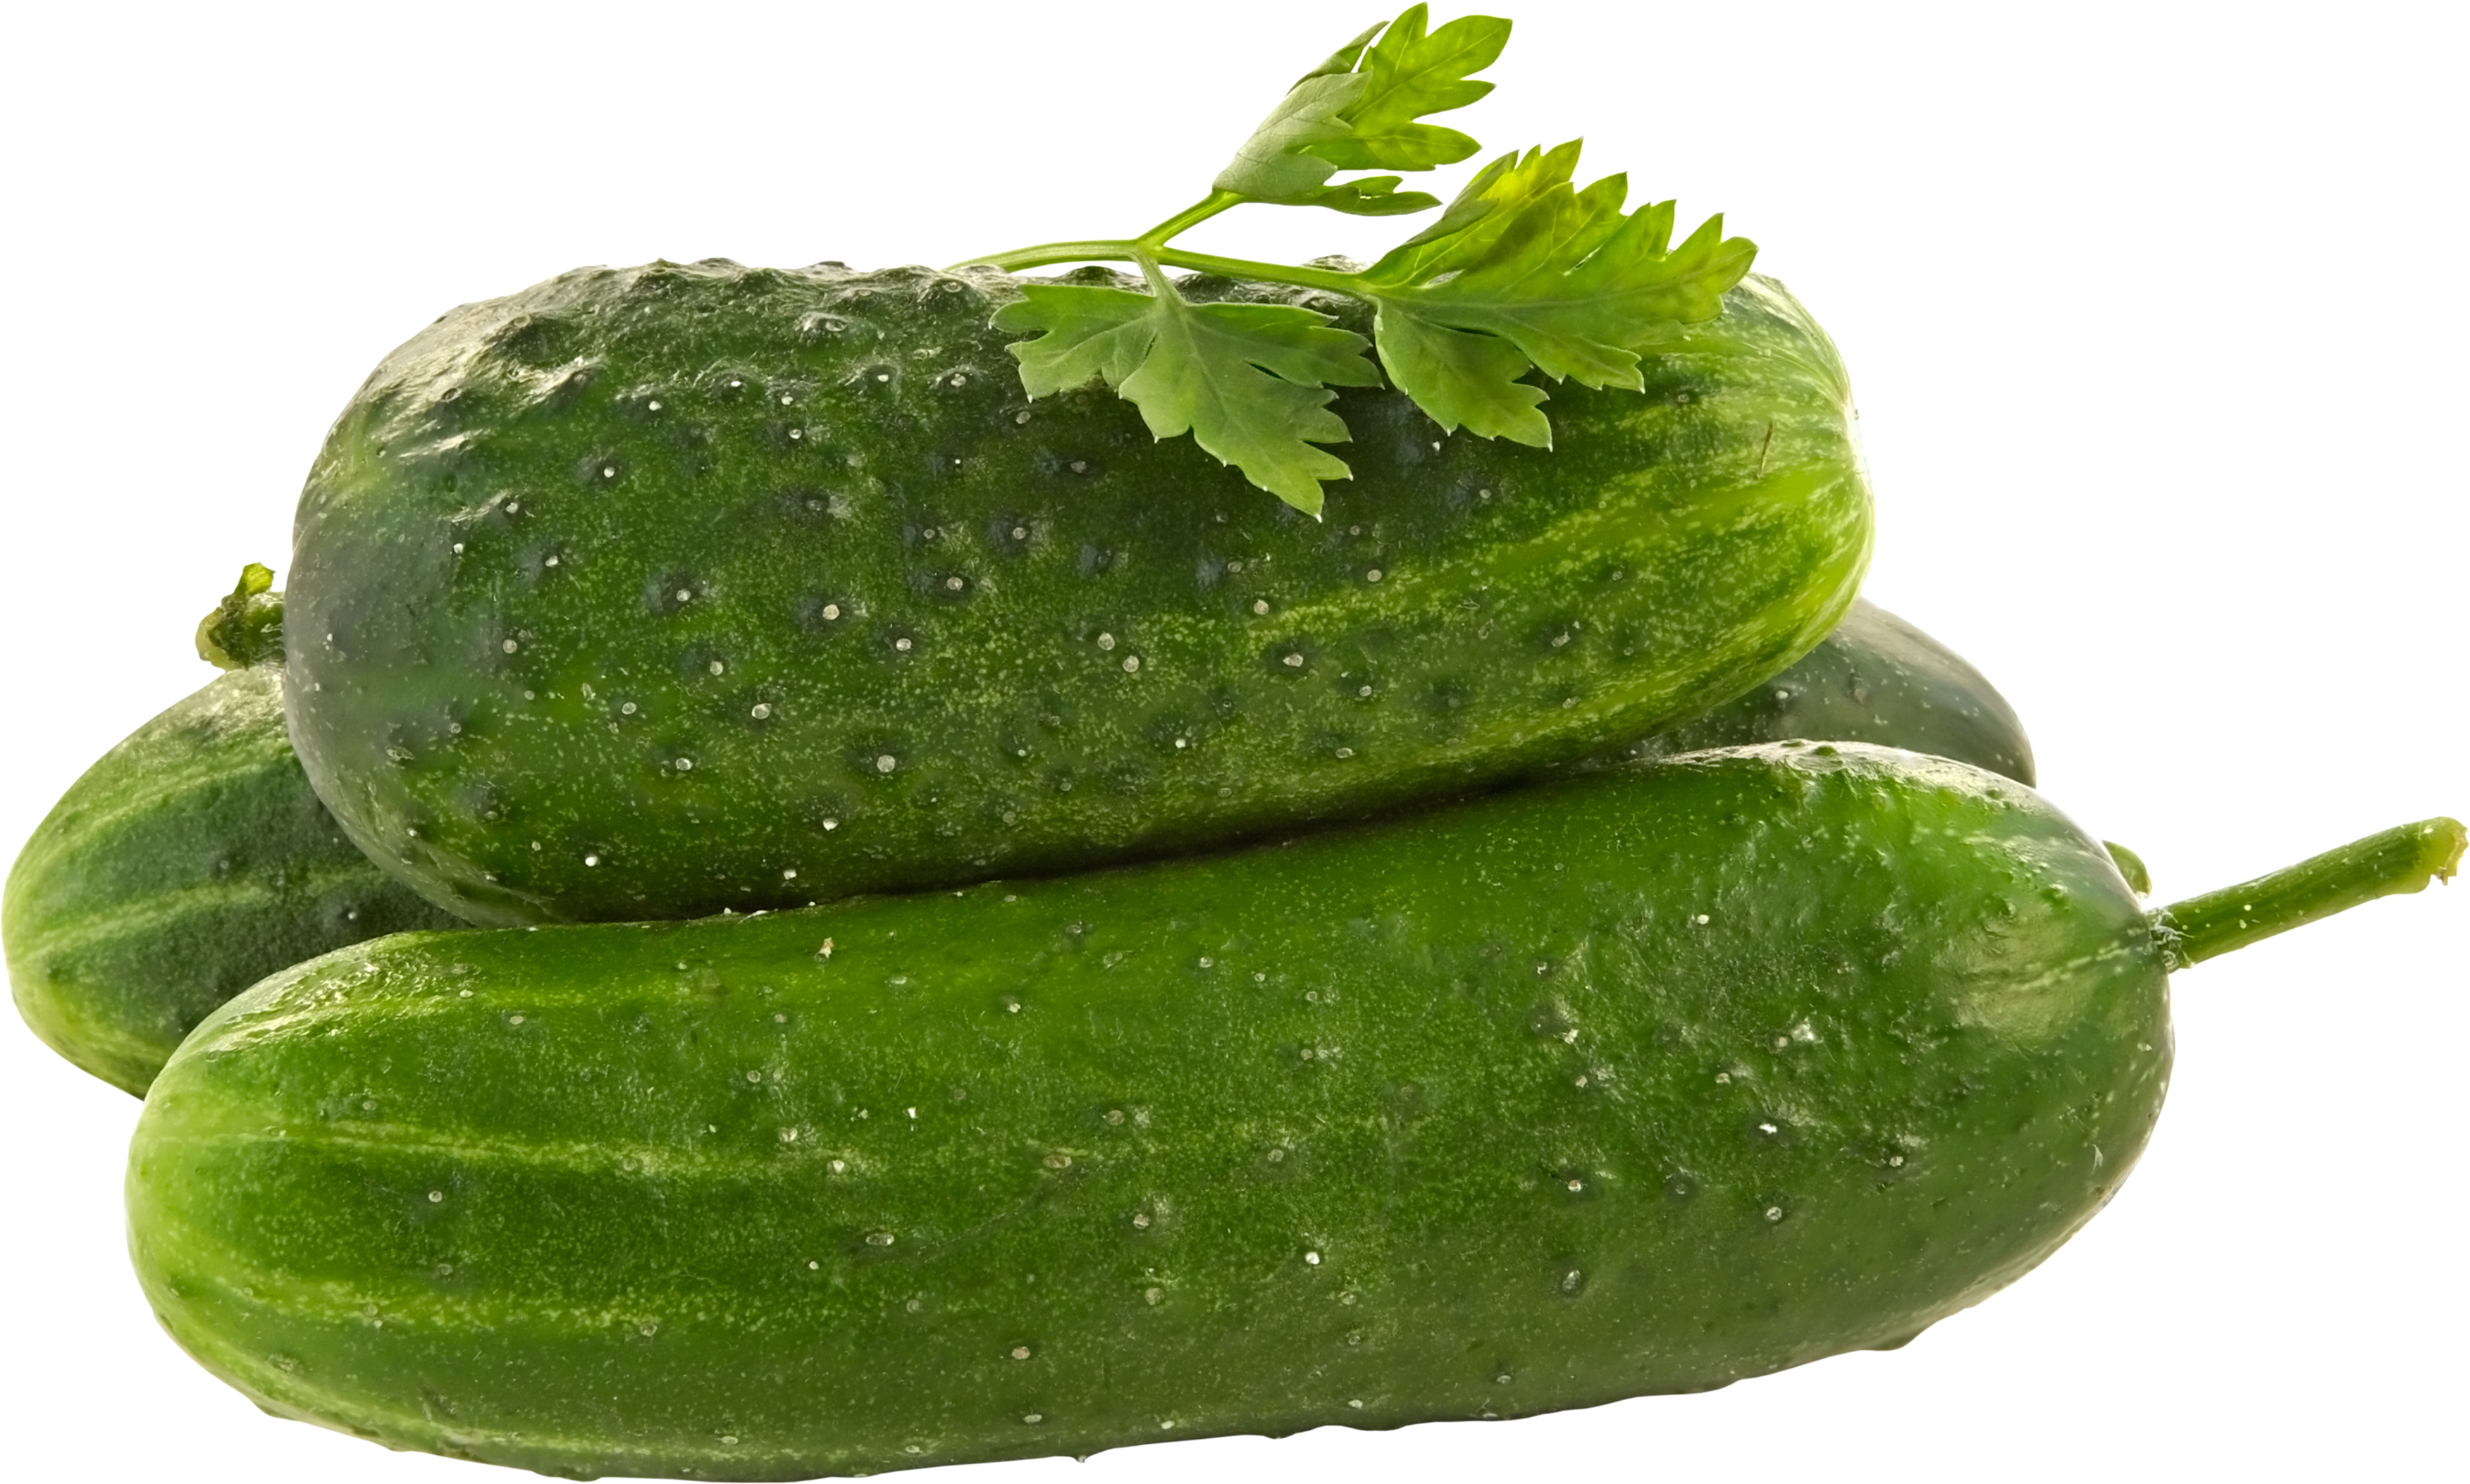 Free download of Cucumber PNG Image - Cucumber HD PNG